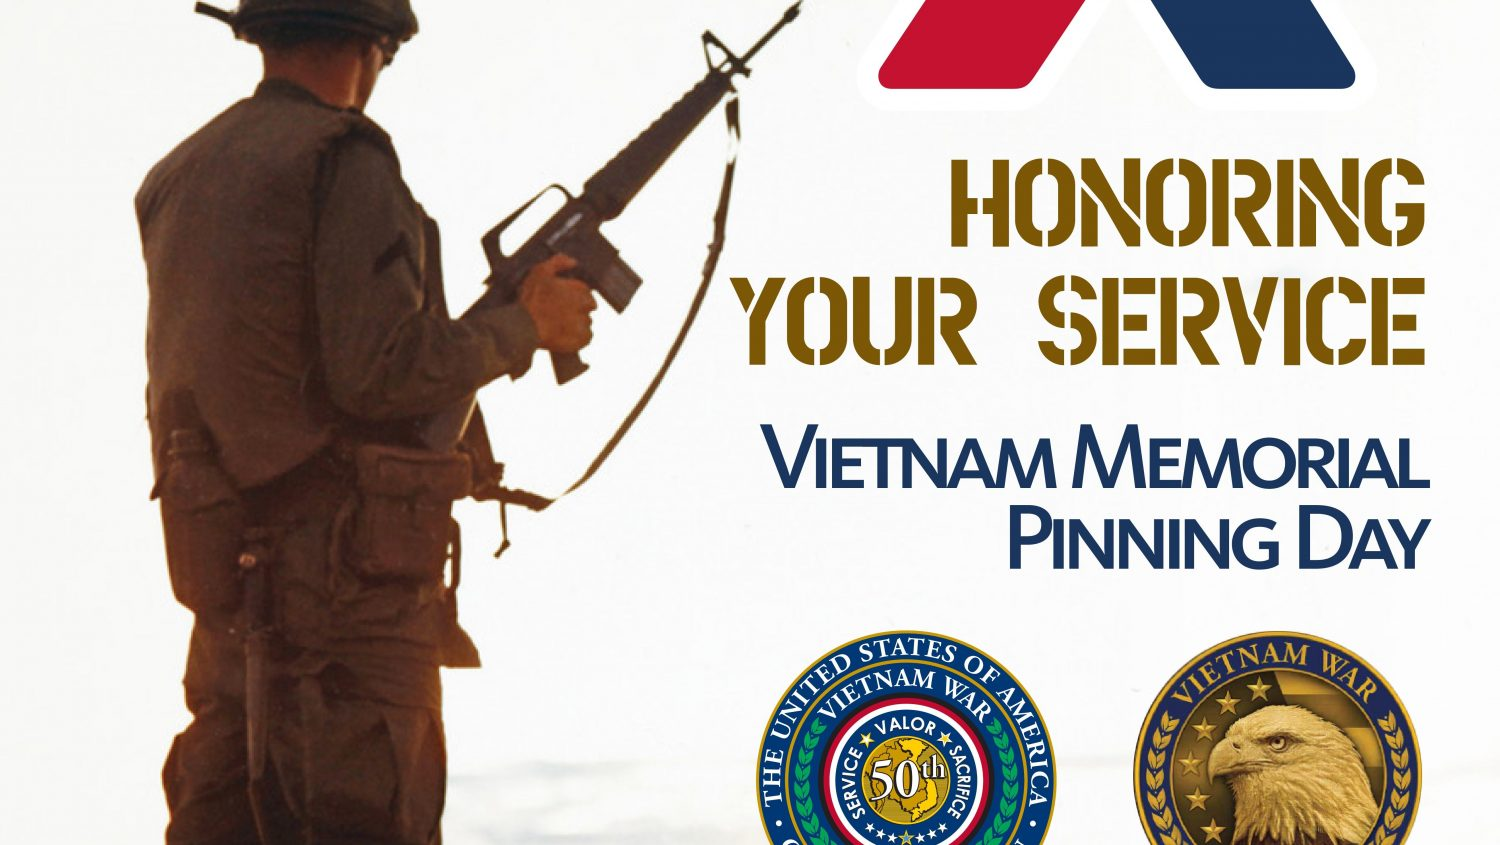 Army & Air Force Exchange Service to Honor Vietnam Veterans with Commemorative Pins March 29